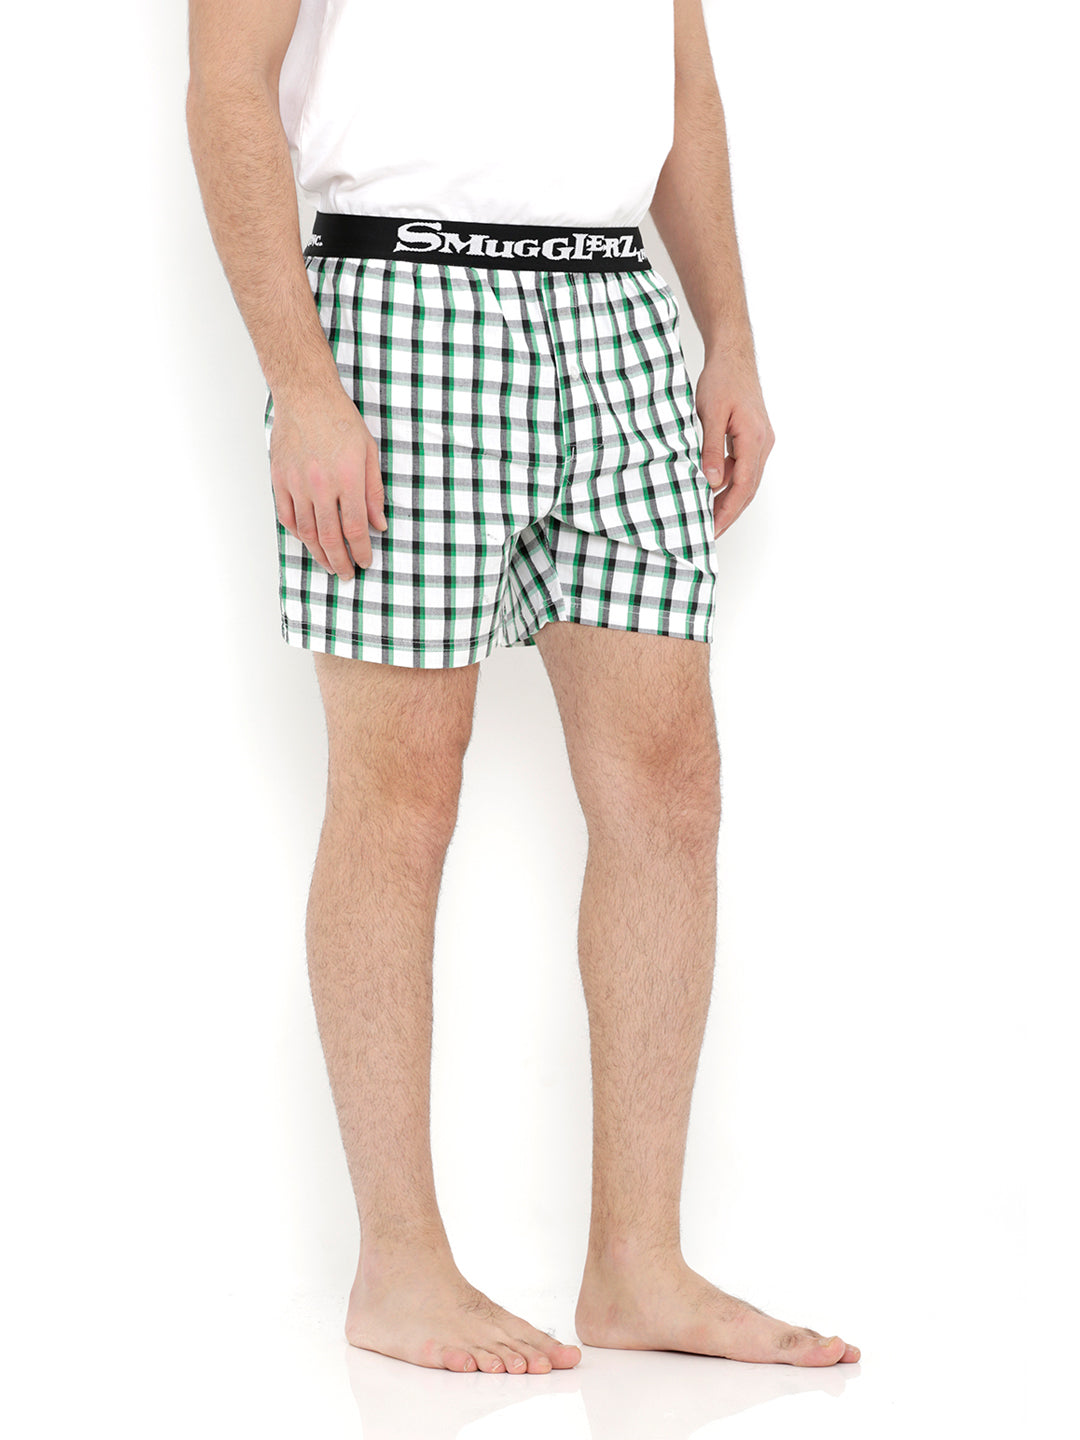 BASIC -  Small Green Check Boxers